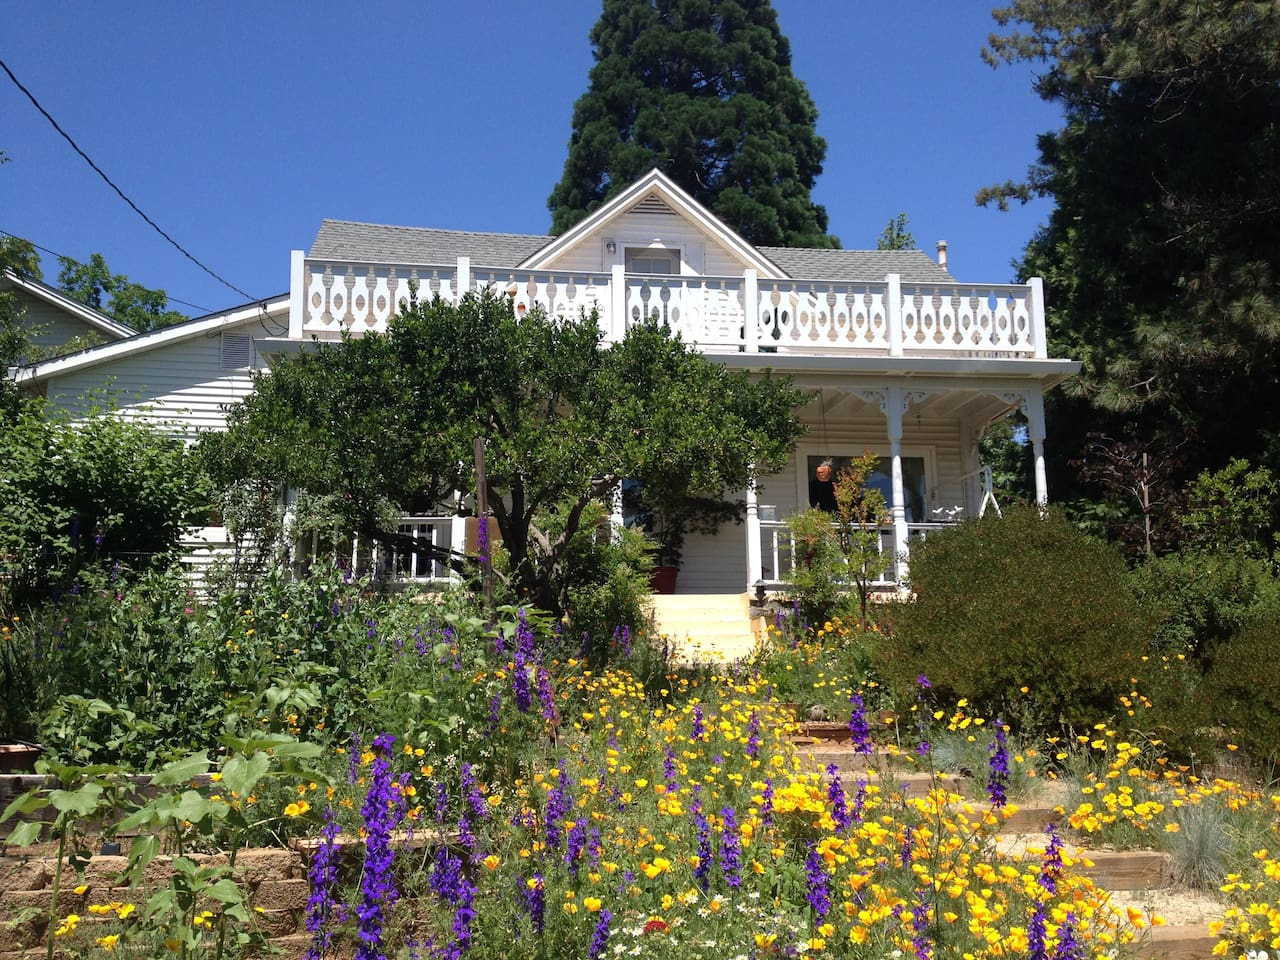 Oh, glorious spring poppies and larkspur. The entire upstairs and porch is all yours.